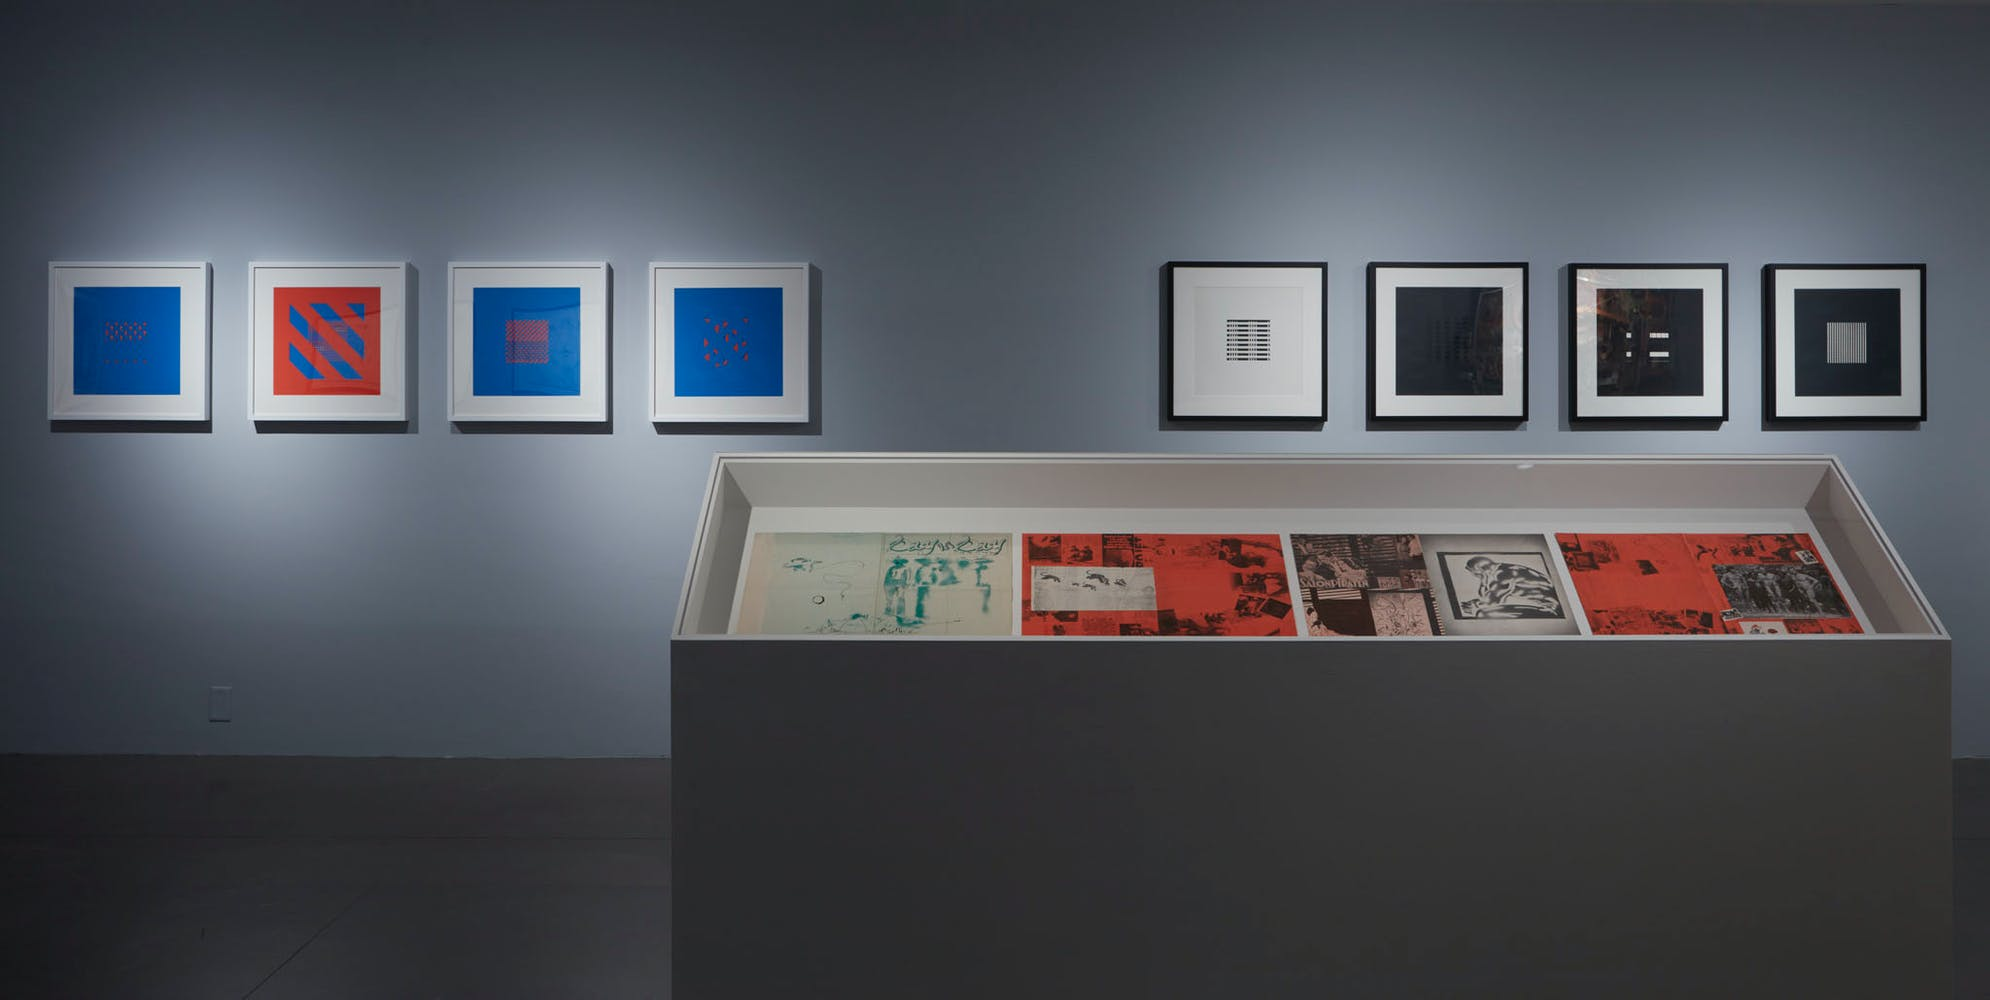 View of the exhibition Less Than One, 2016; (left to right): Dieter Roth, FC, 1958-1965; Dieter Roth, AC, 1958-1964; (foreground): Sigmar Polke, Day by Day . . . They Take Some Brain Away, 1975 (Photo: Gene Pittman, ©Walker Art Center)